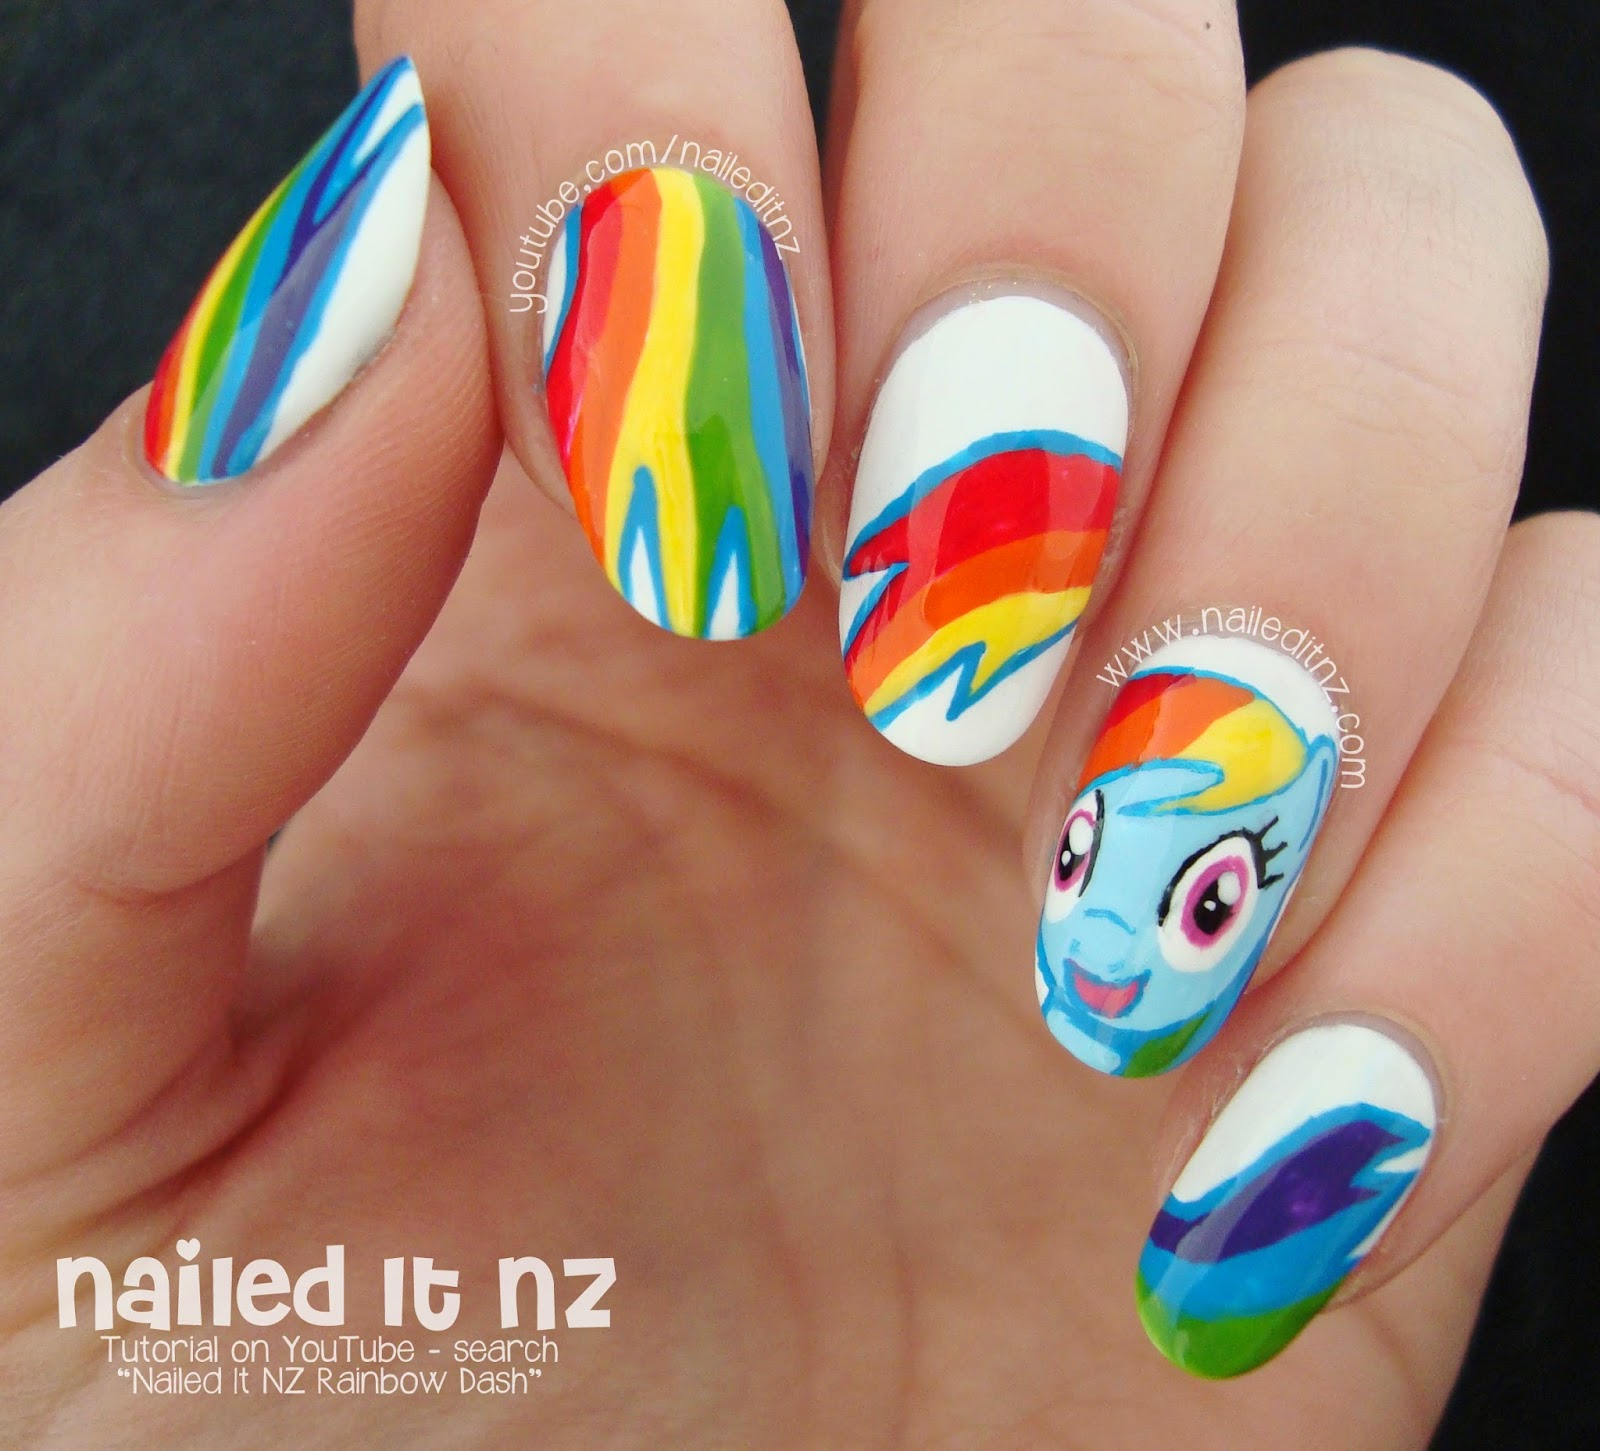 My little pony nail art rainbow dash tutorial perhaps in between halloween and christmas this year or in the new year i could do a big my little pony series what do you think prinsesfo Gallery